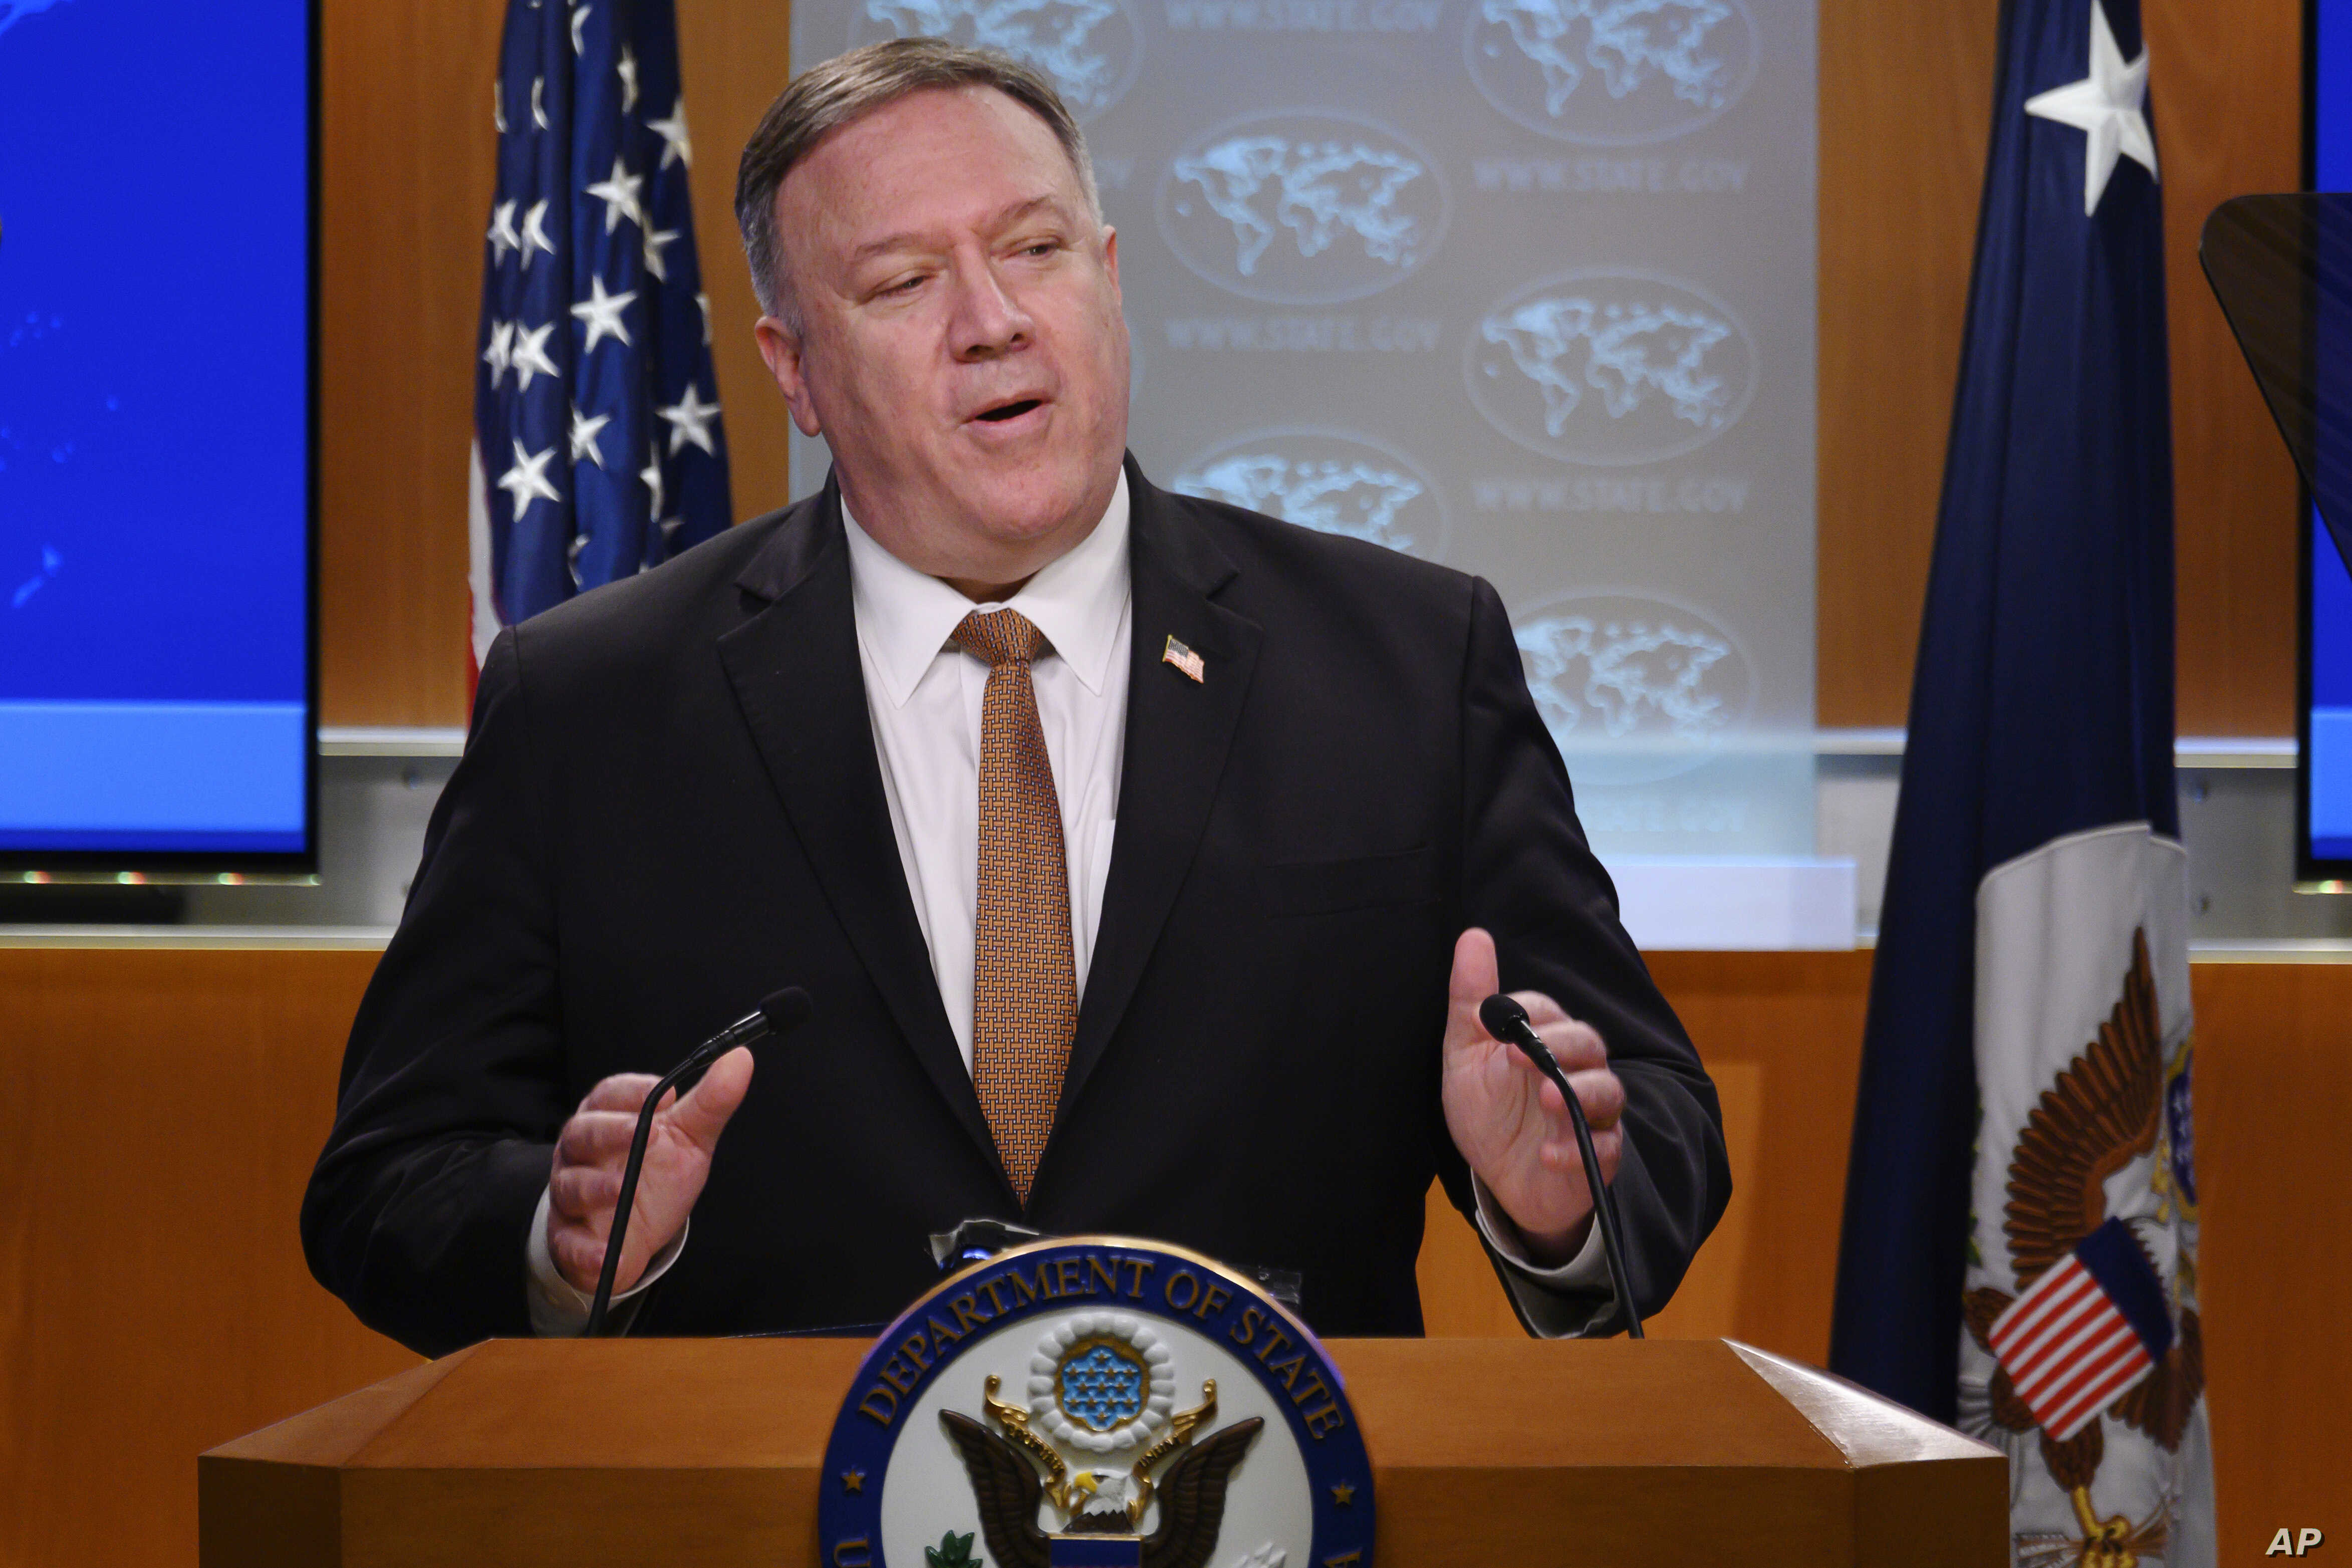 US Secretary of State, Mike Pompeo says there is 'enormous evidence' that the Coronavirus originated in Wuhan laboratory in China